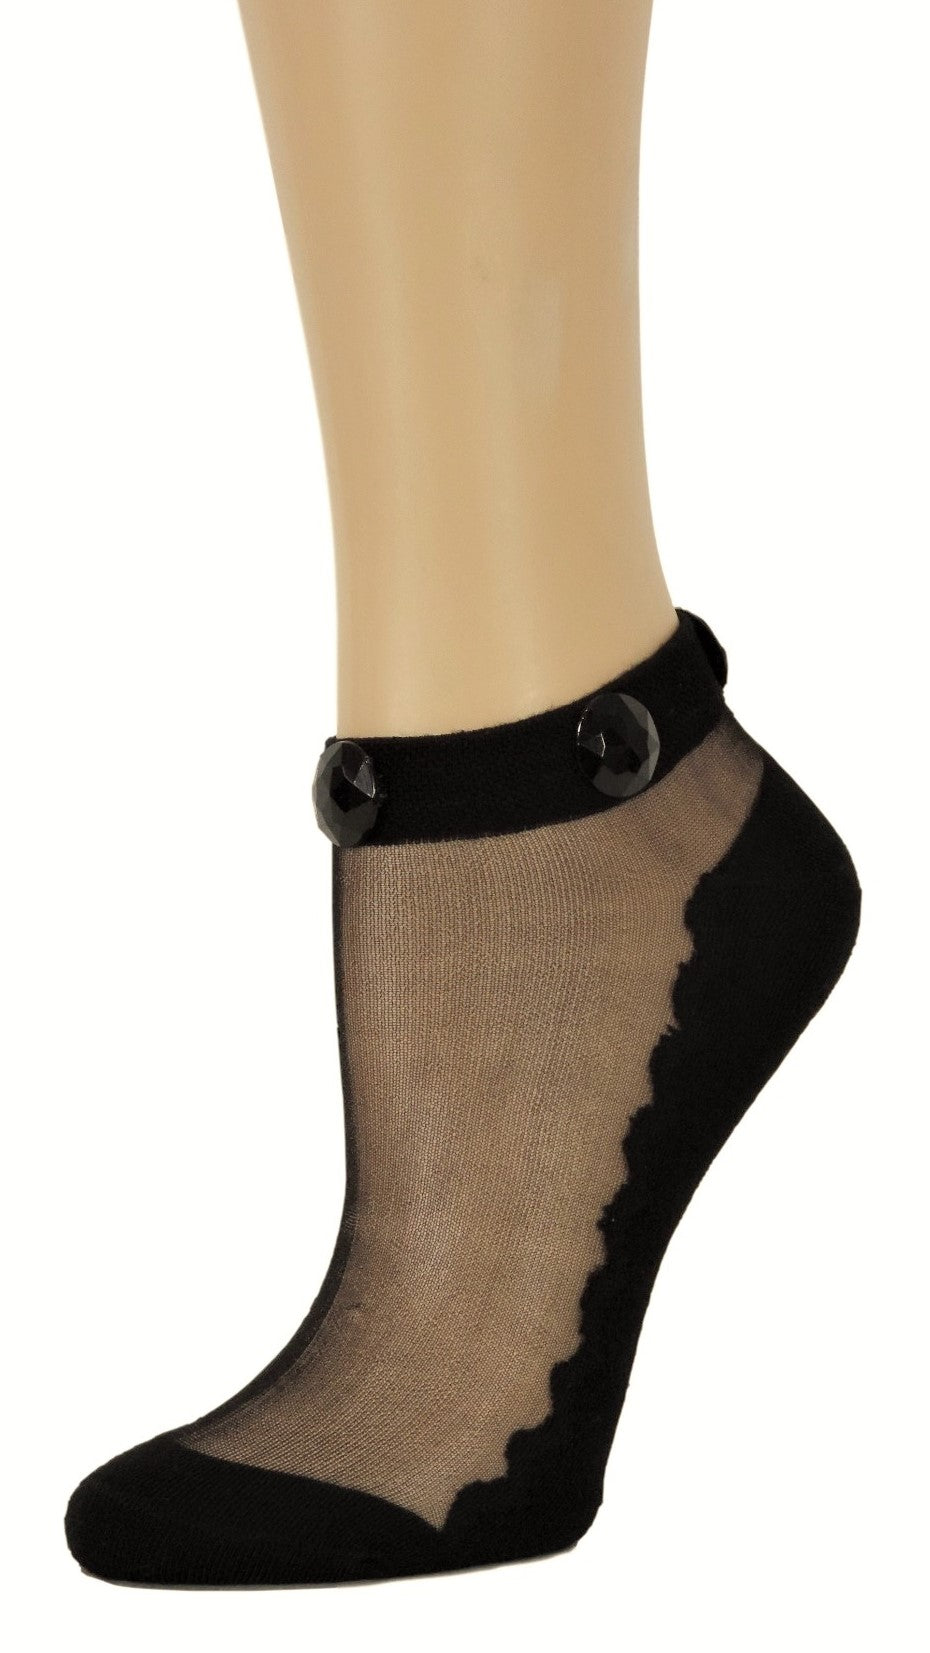 Elegant Black Ankle Custom Sheer Socks with beads - Global Trendz Fashion®